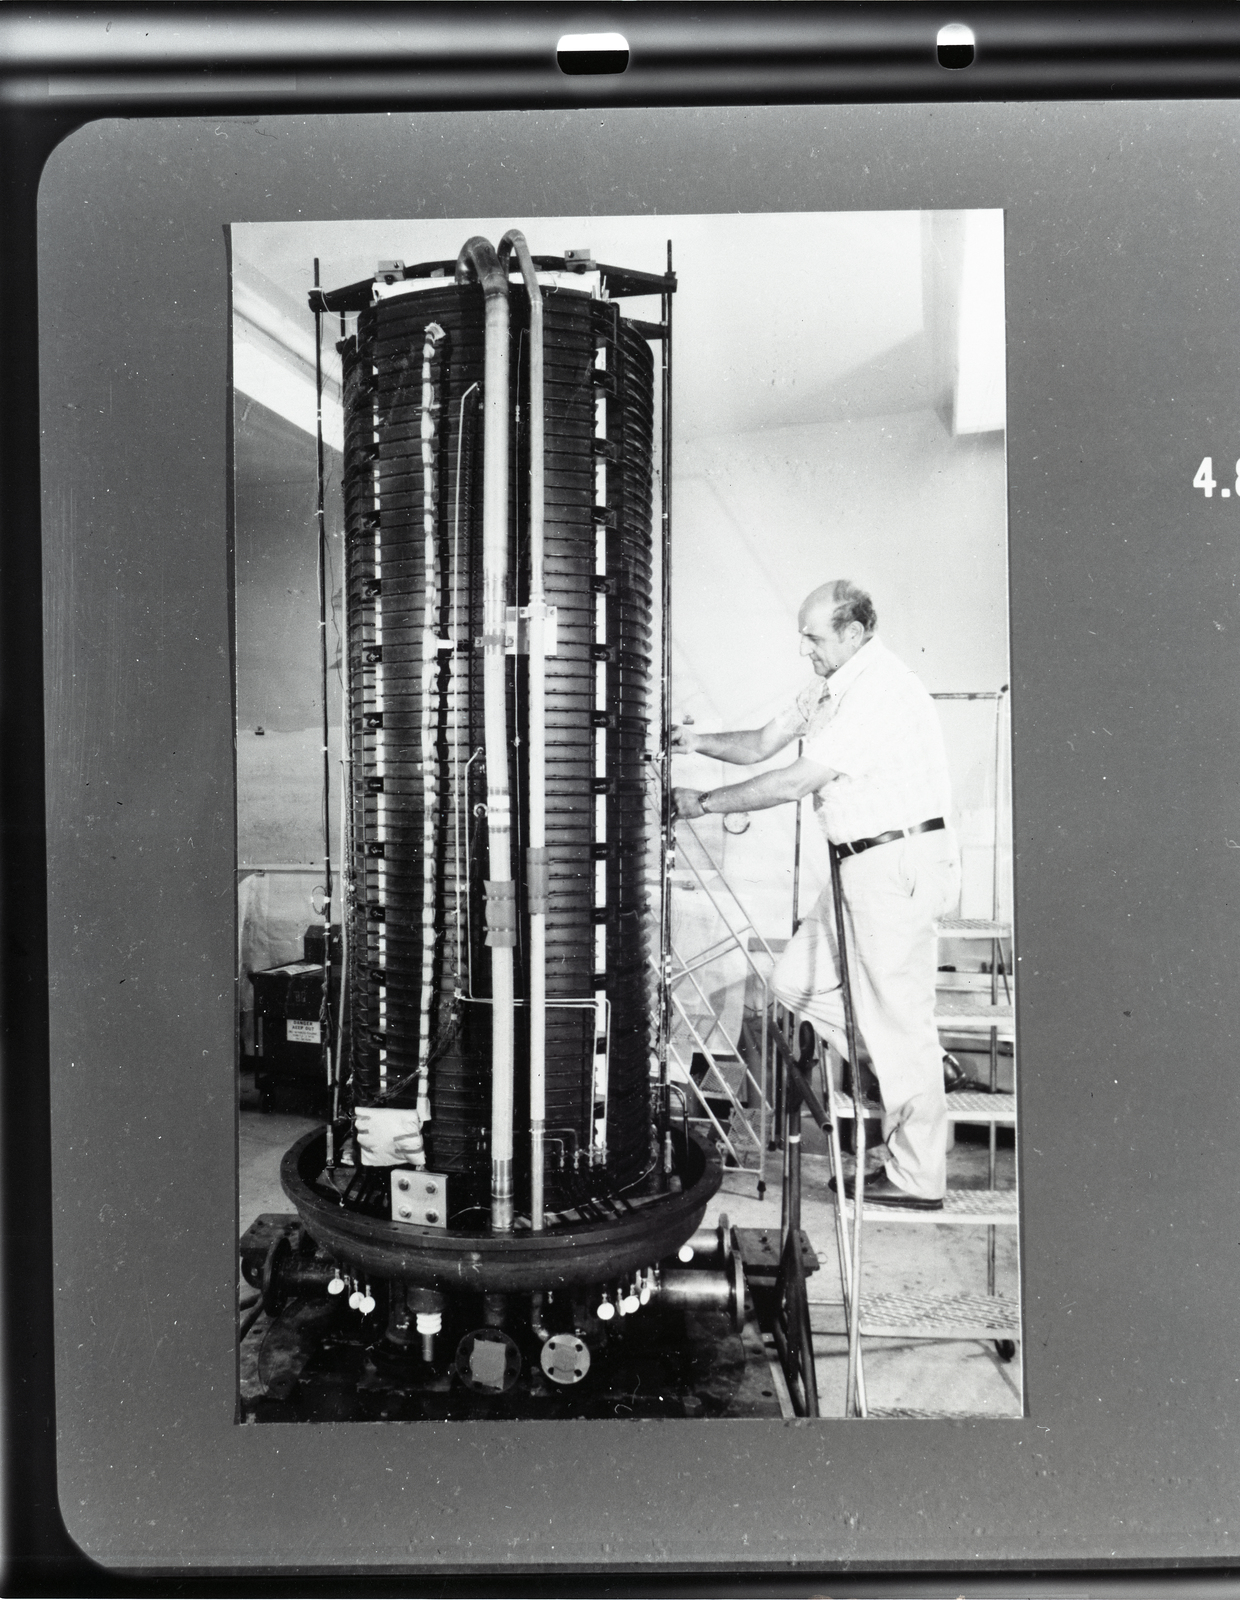 PROTOTYPE CELL STACK